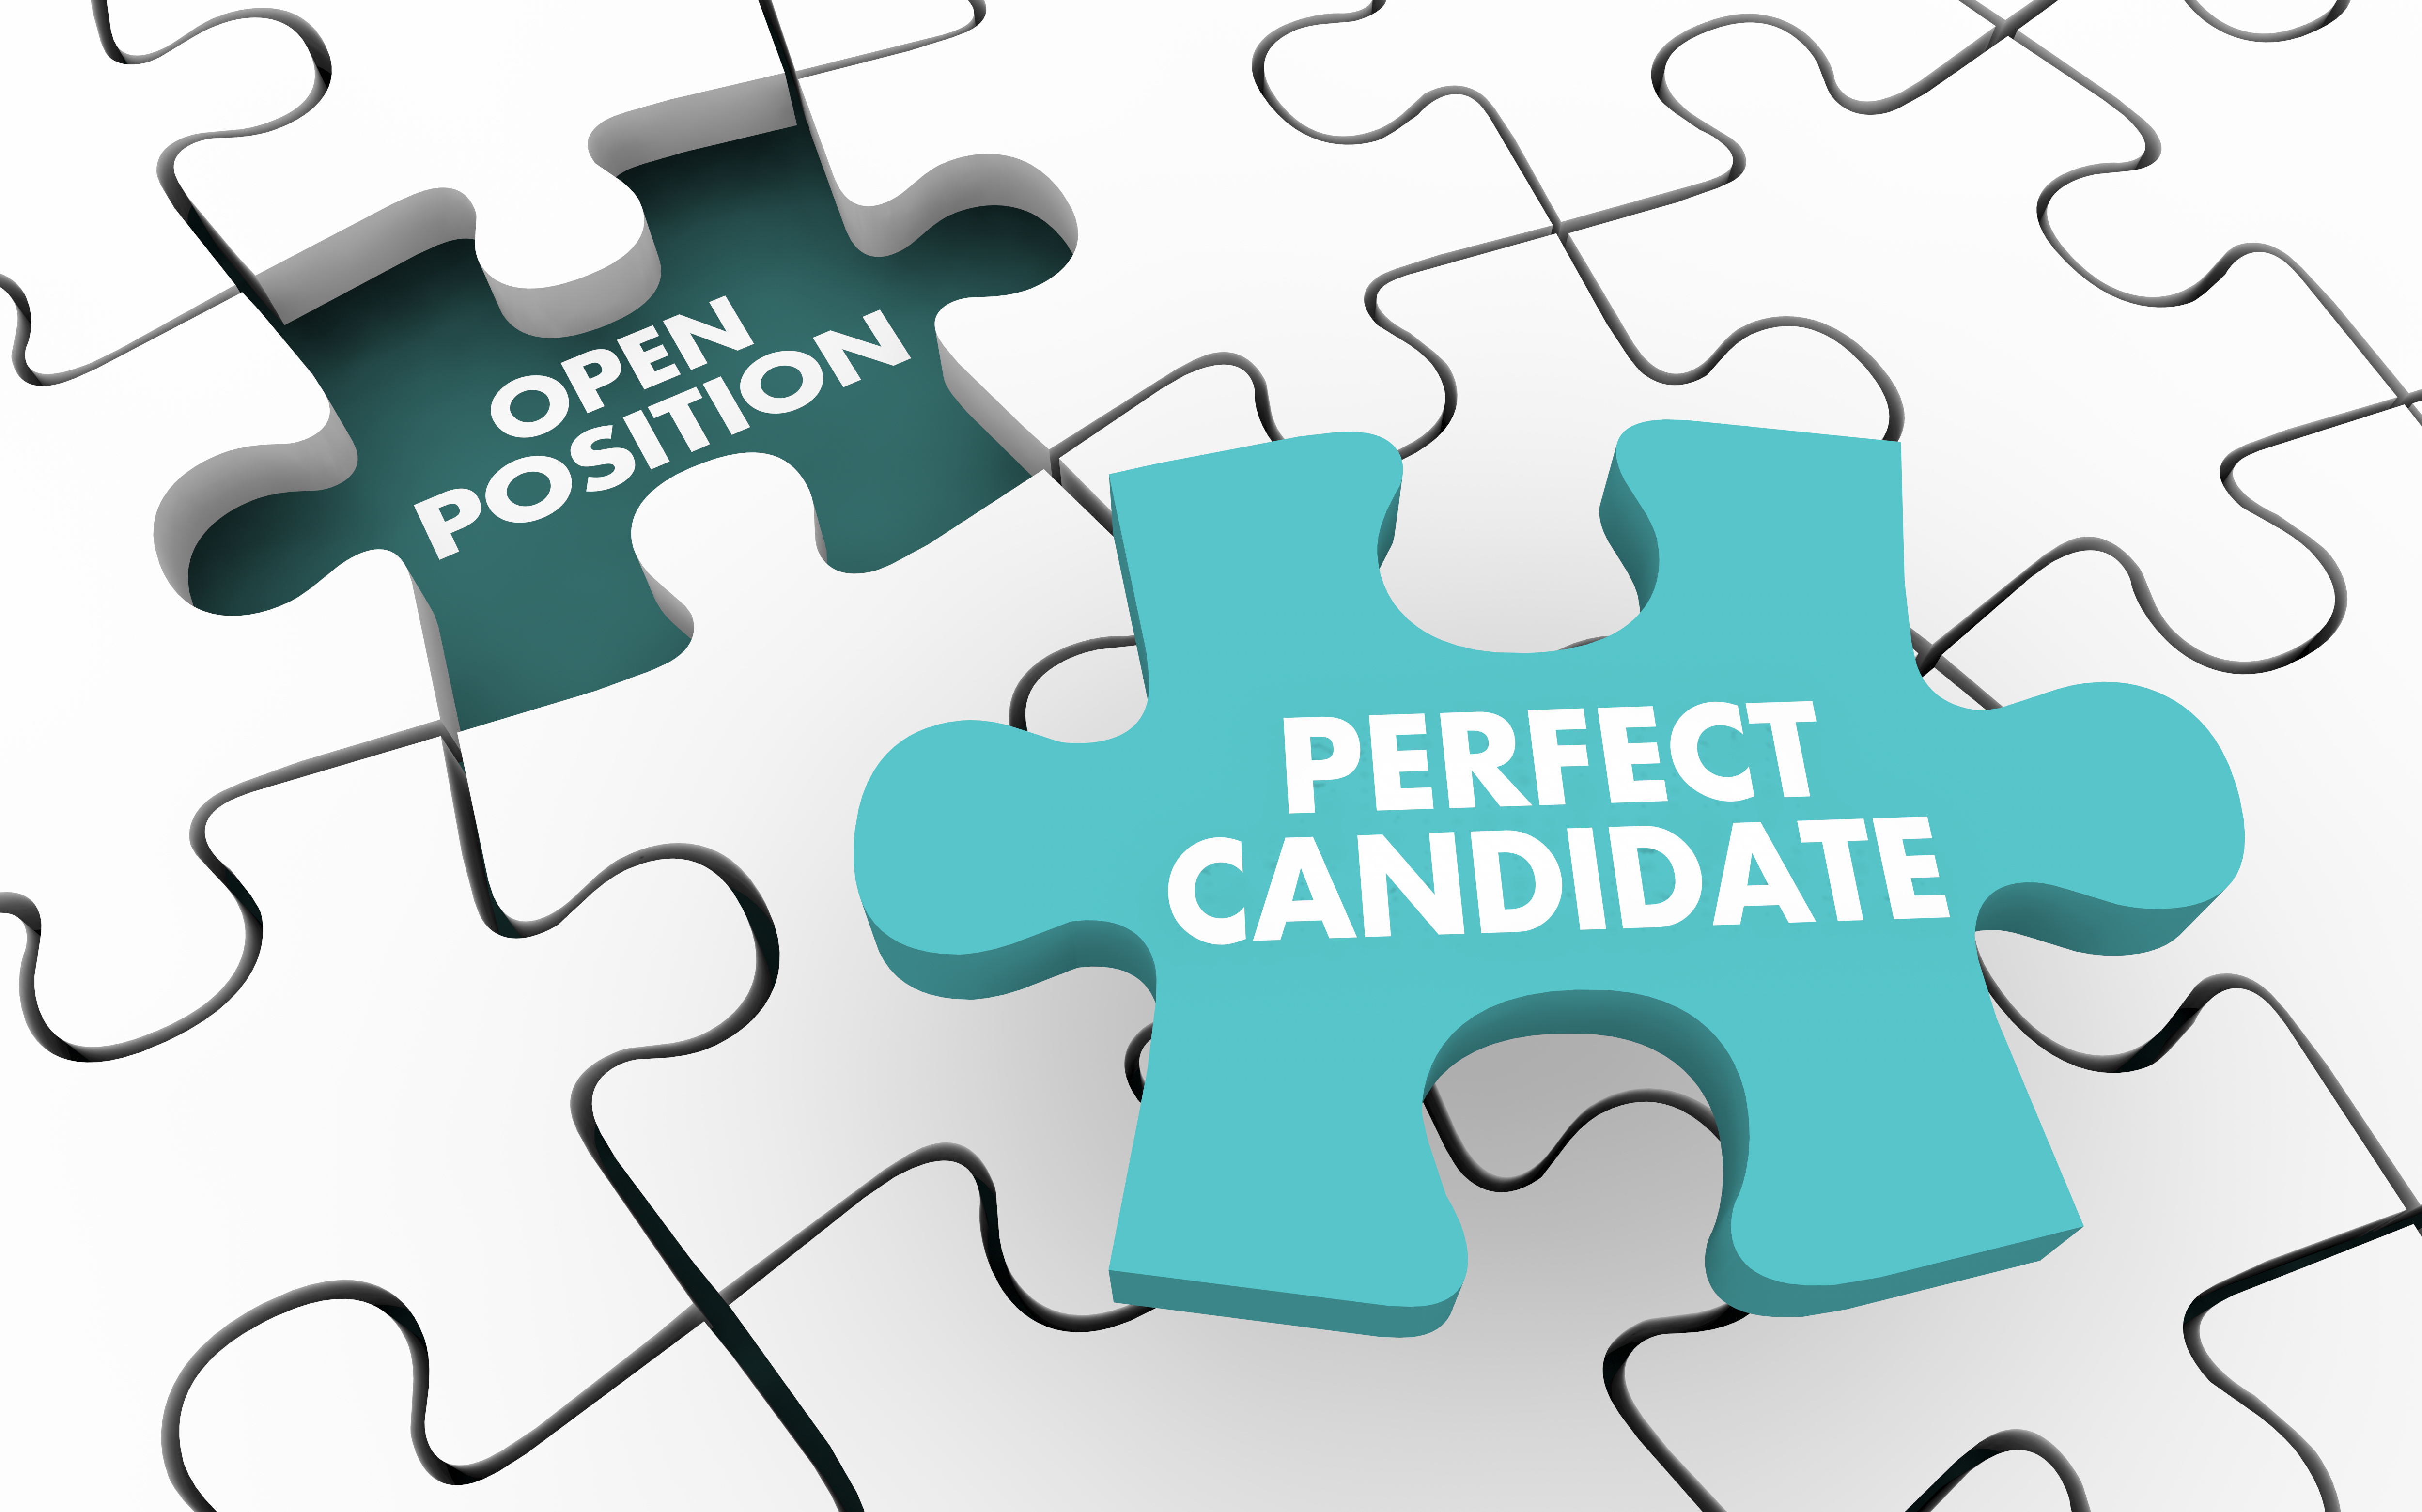 Perfect Candidate Hire Open Job Position Puzzle 3d Illustration